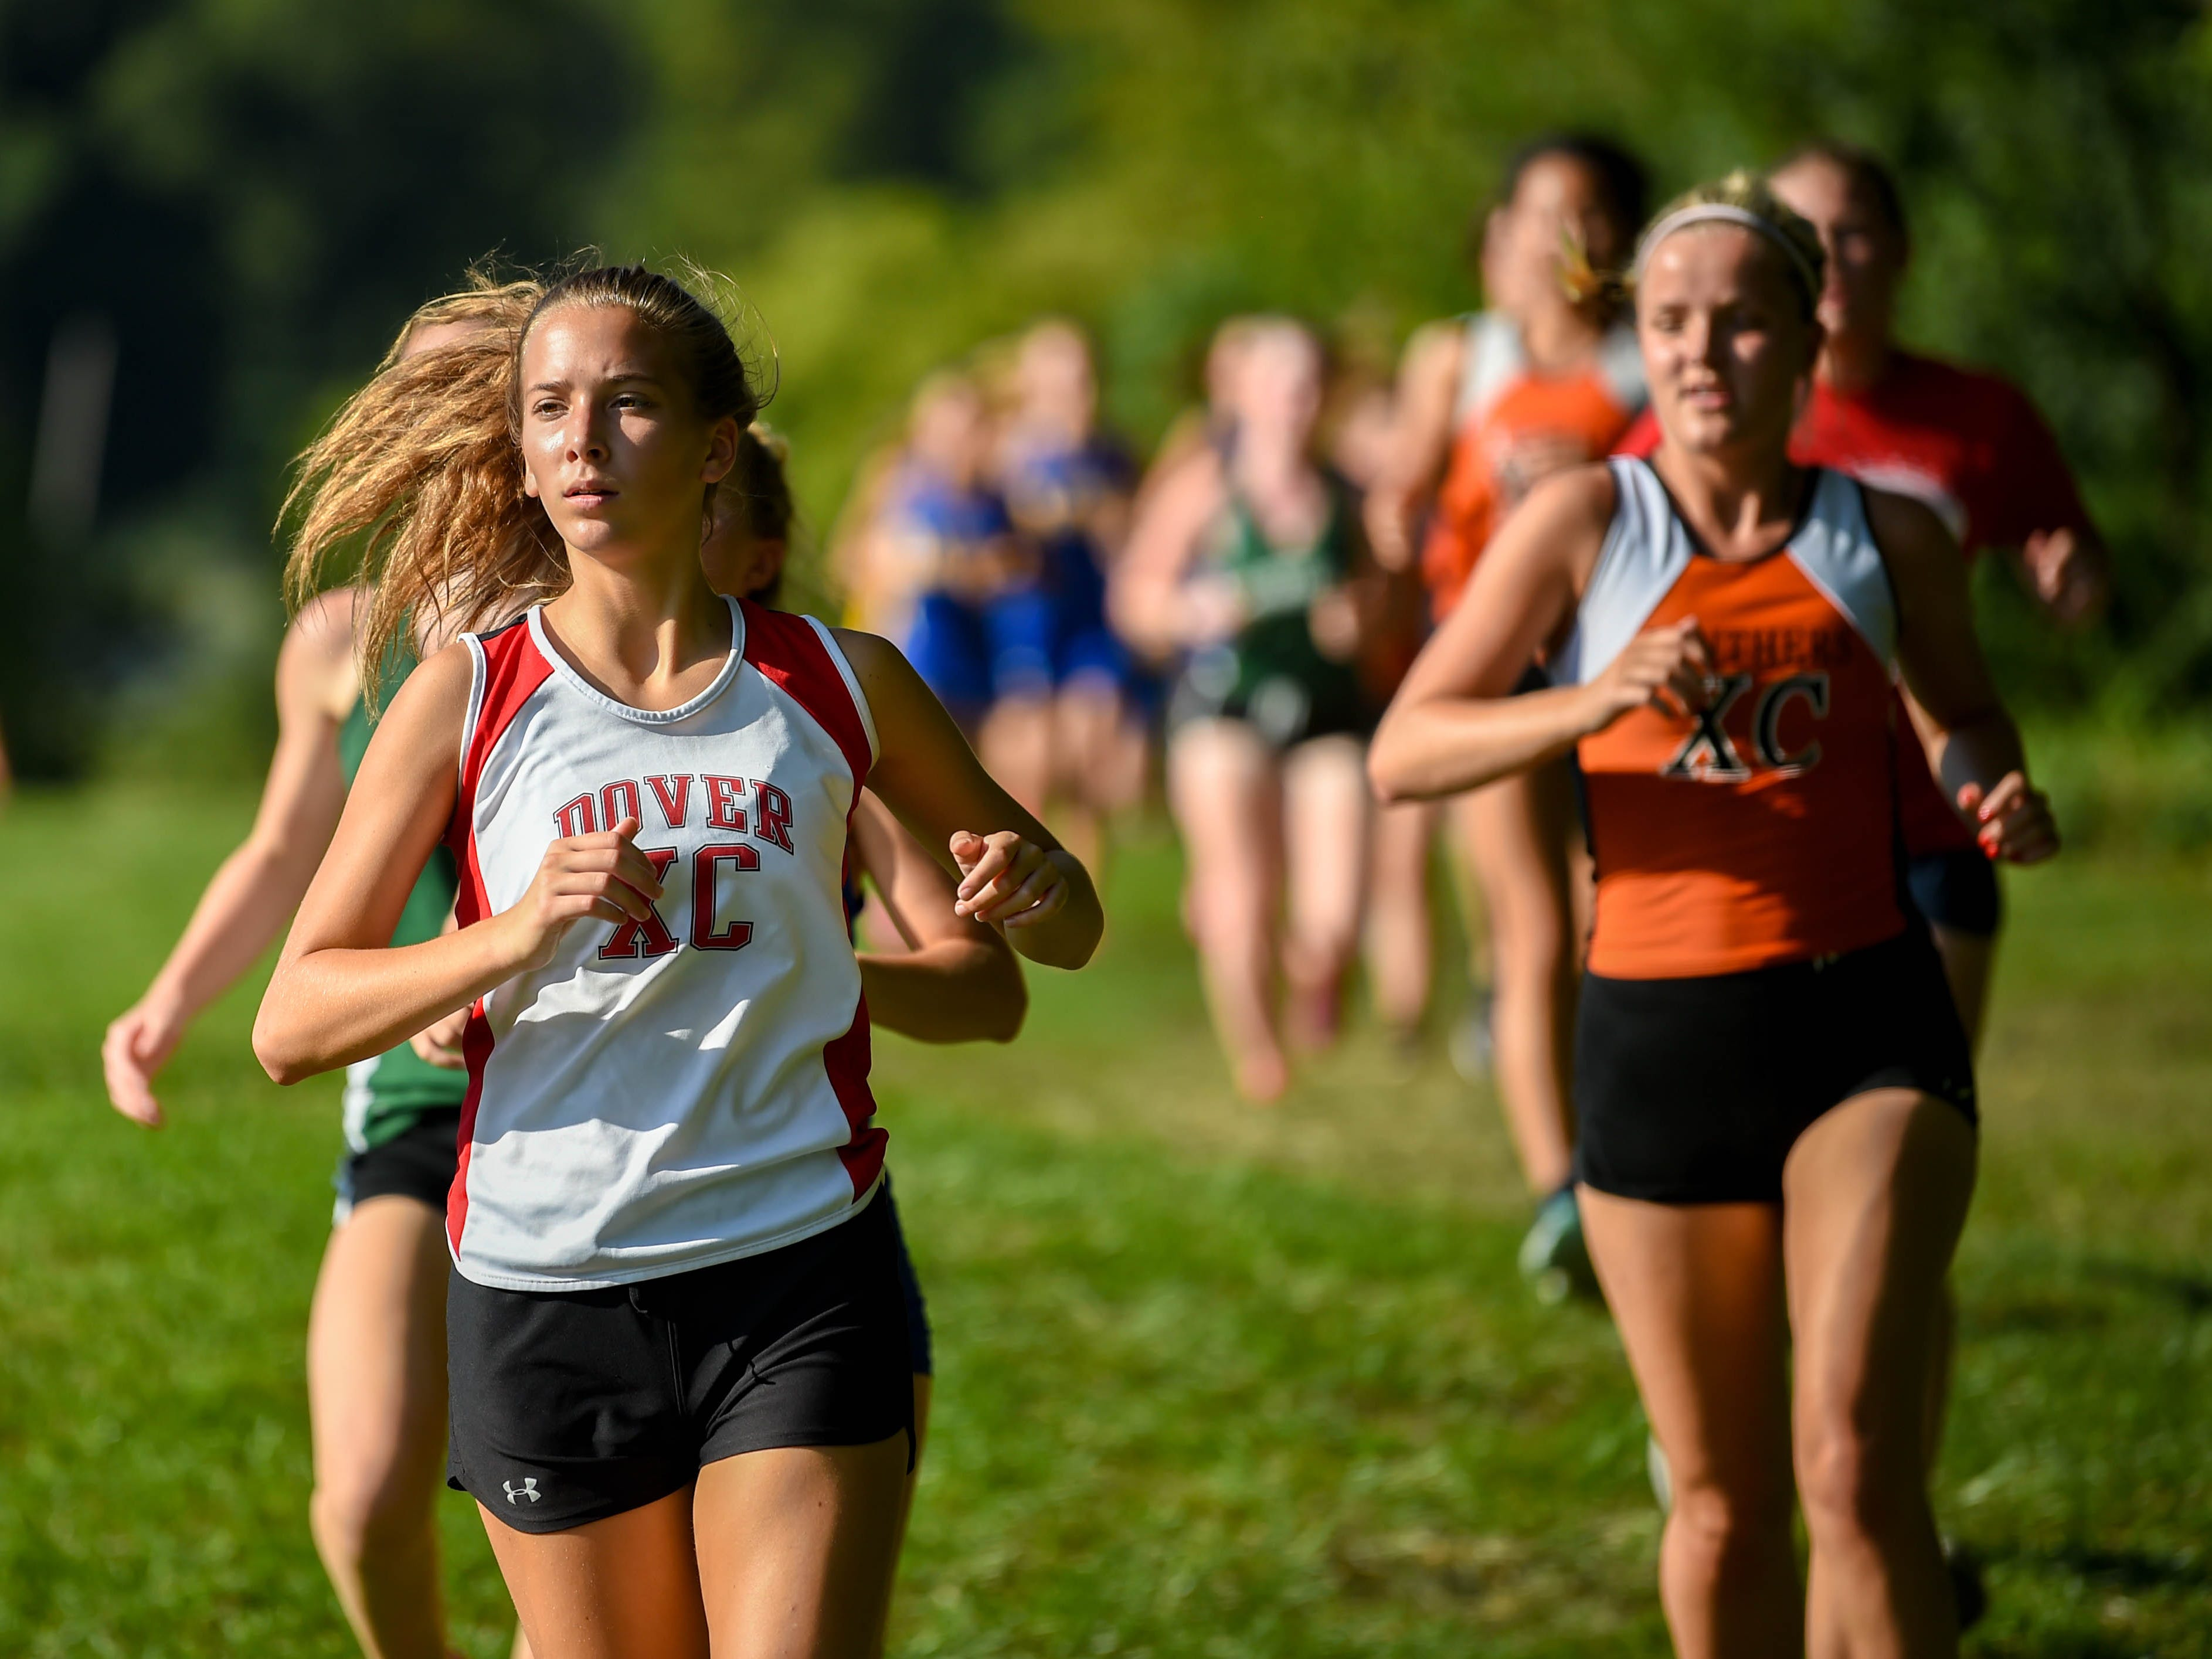 Dover stays calm as competitors try to catch up during the Cross Country scrimmage at John Rudy County Park on August 30, 2018.